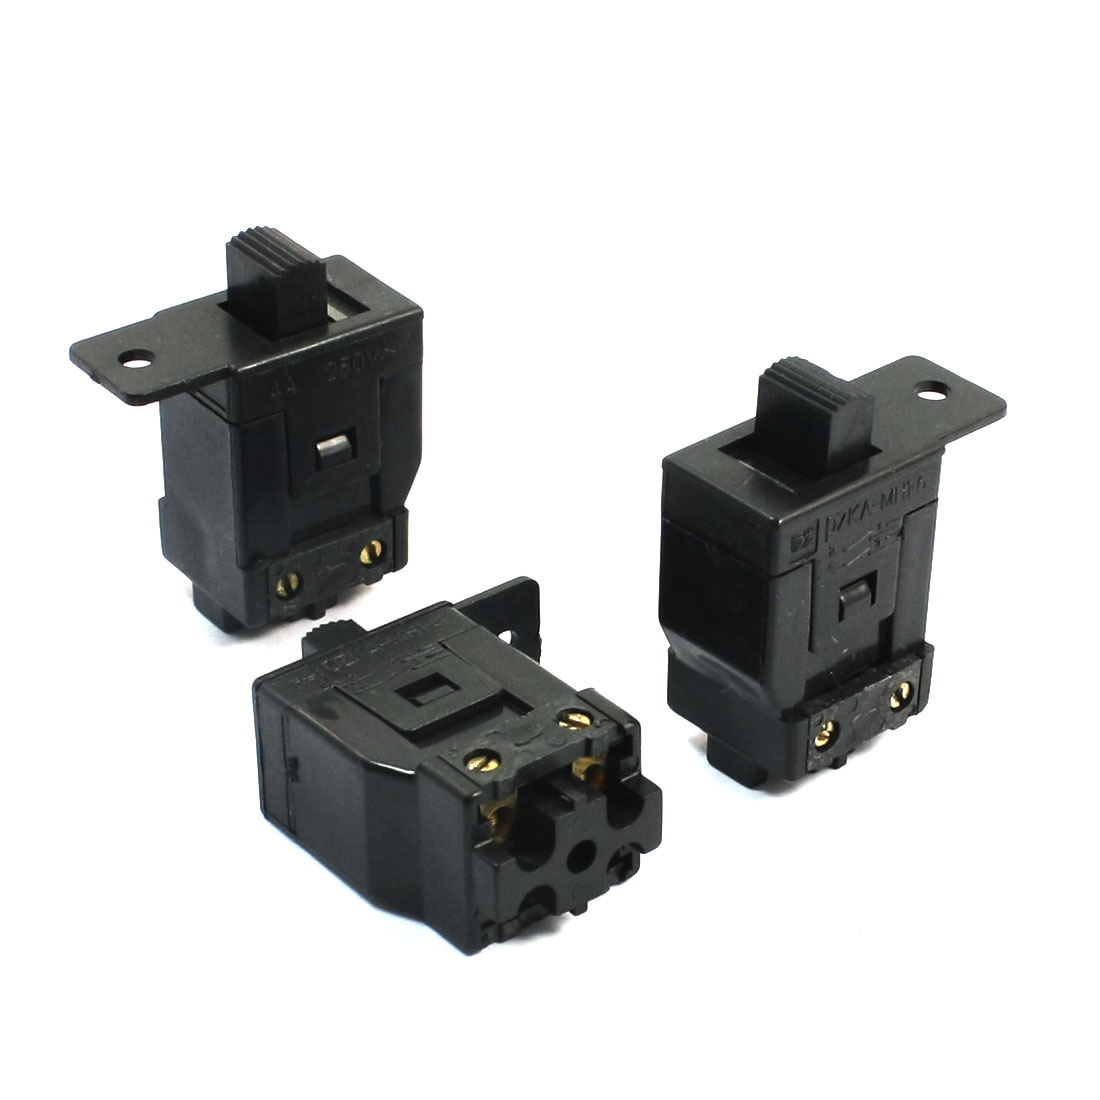 3pcs Replacement Self Locking Switch DPST for Dragon 100 Electric Grinder